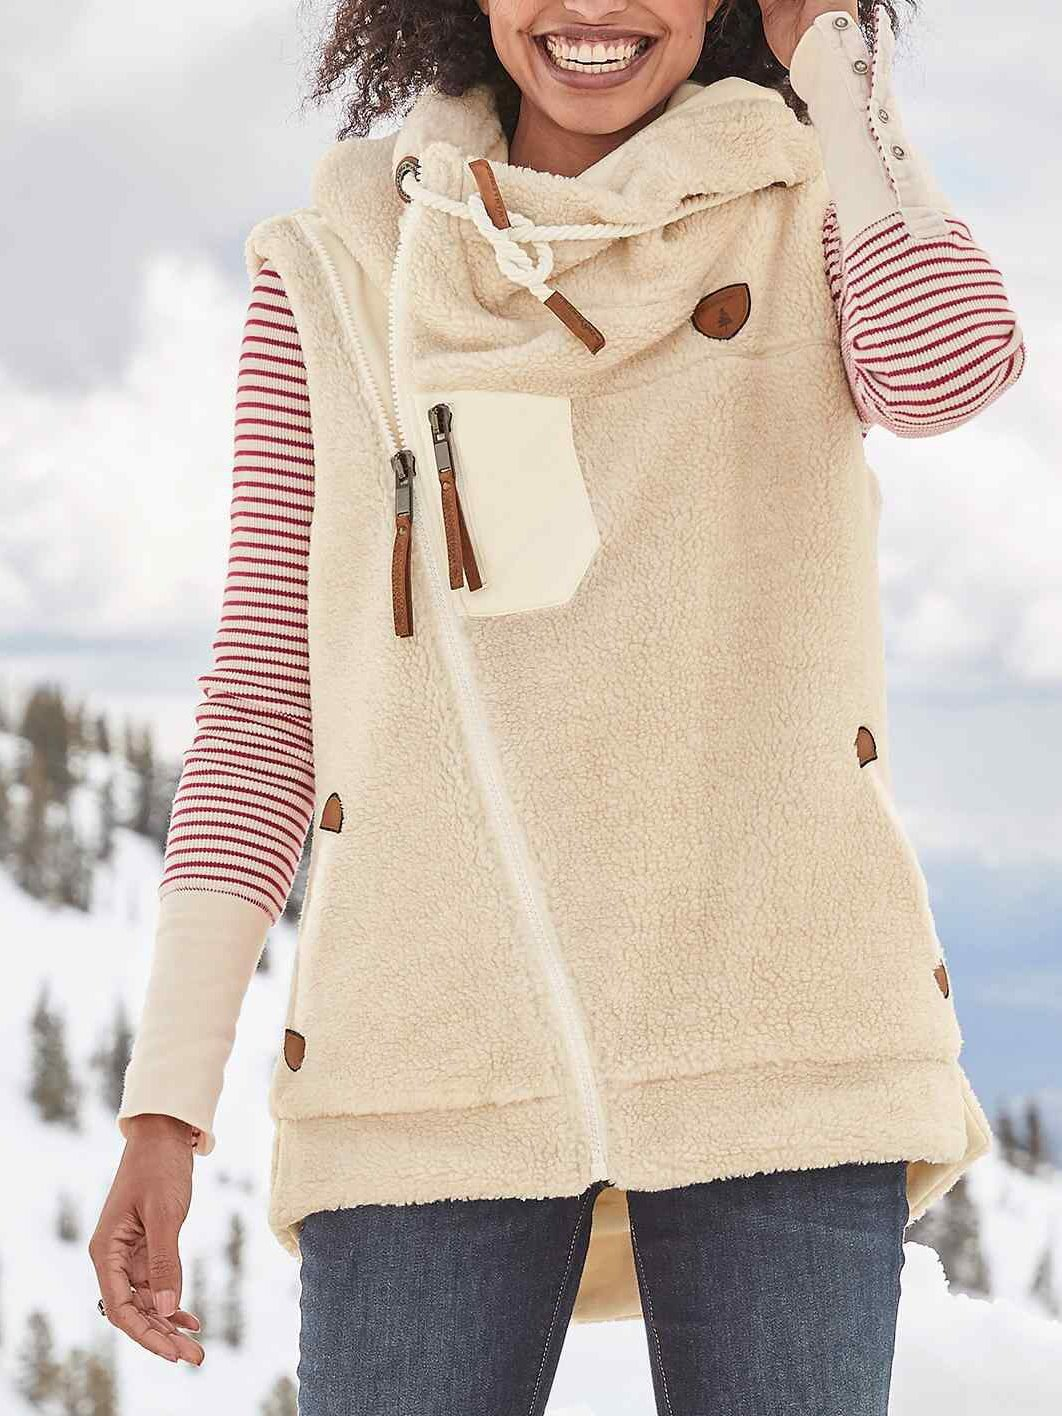 Winter plain keep warm fleece vest coat